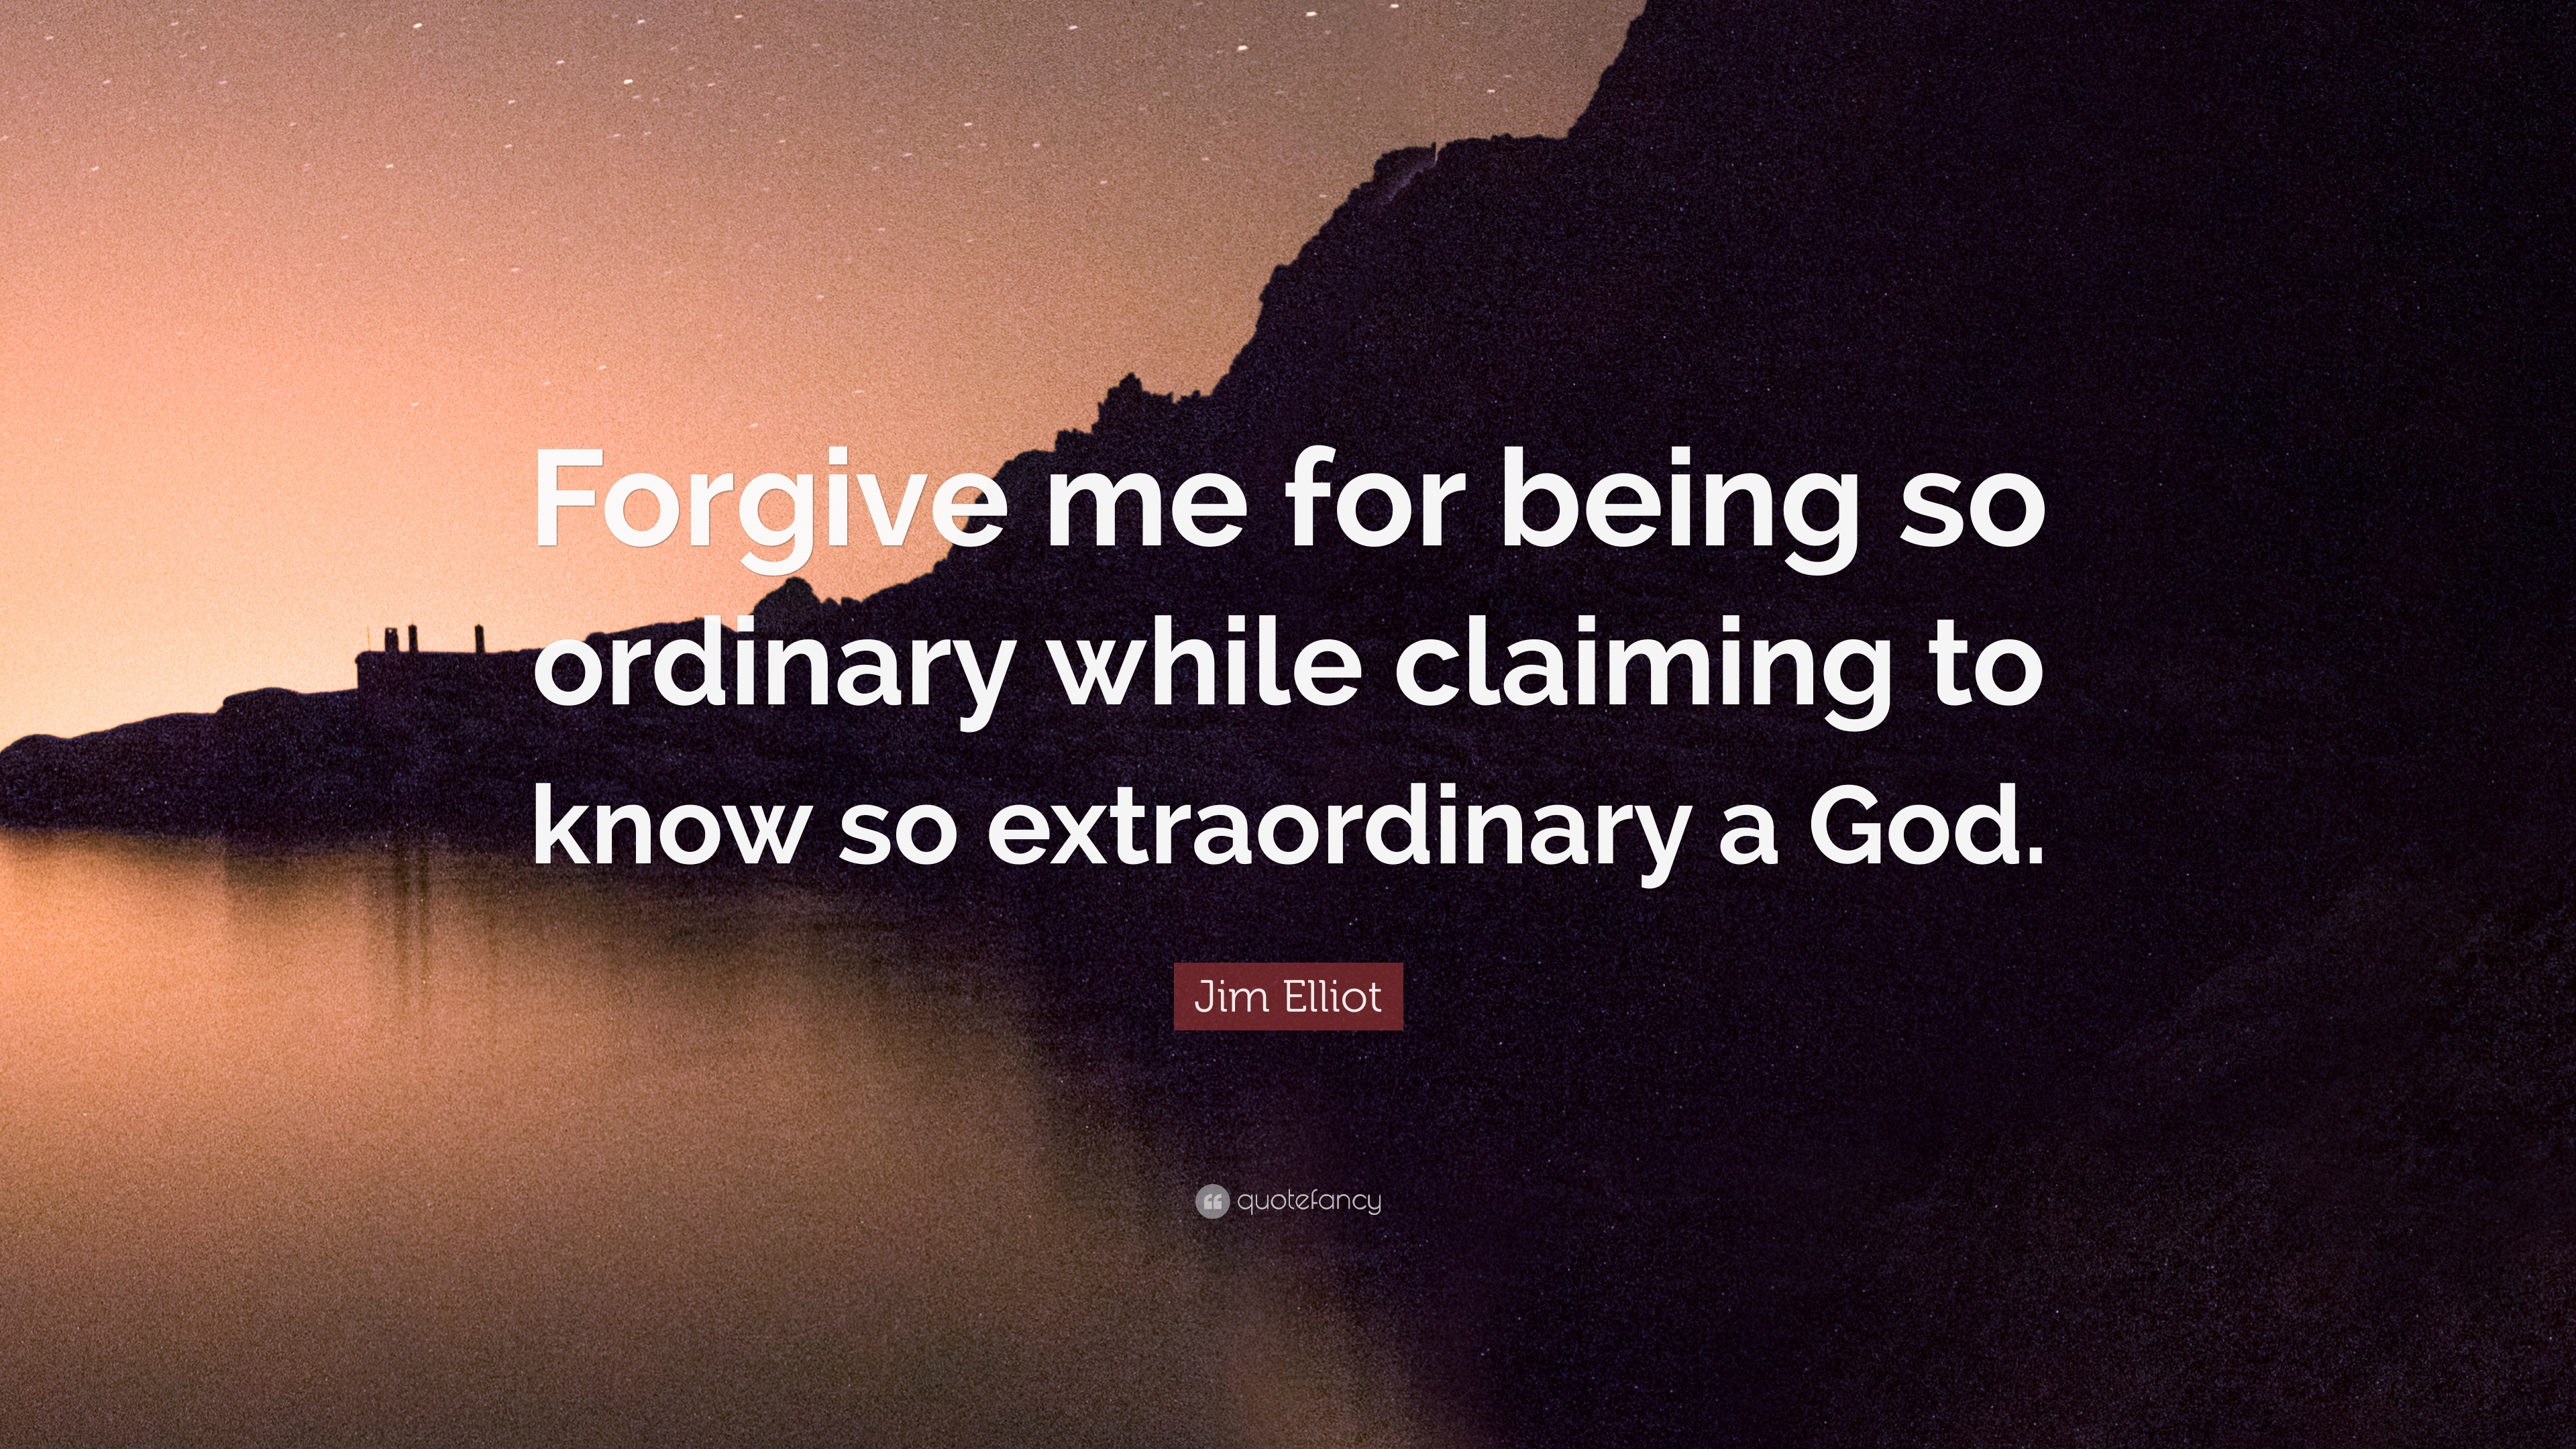 Jim Elliot Quote Forgive Me For Being So Ordinary While Claiming